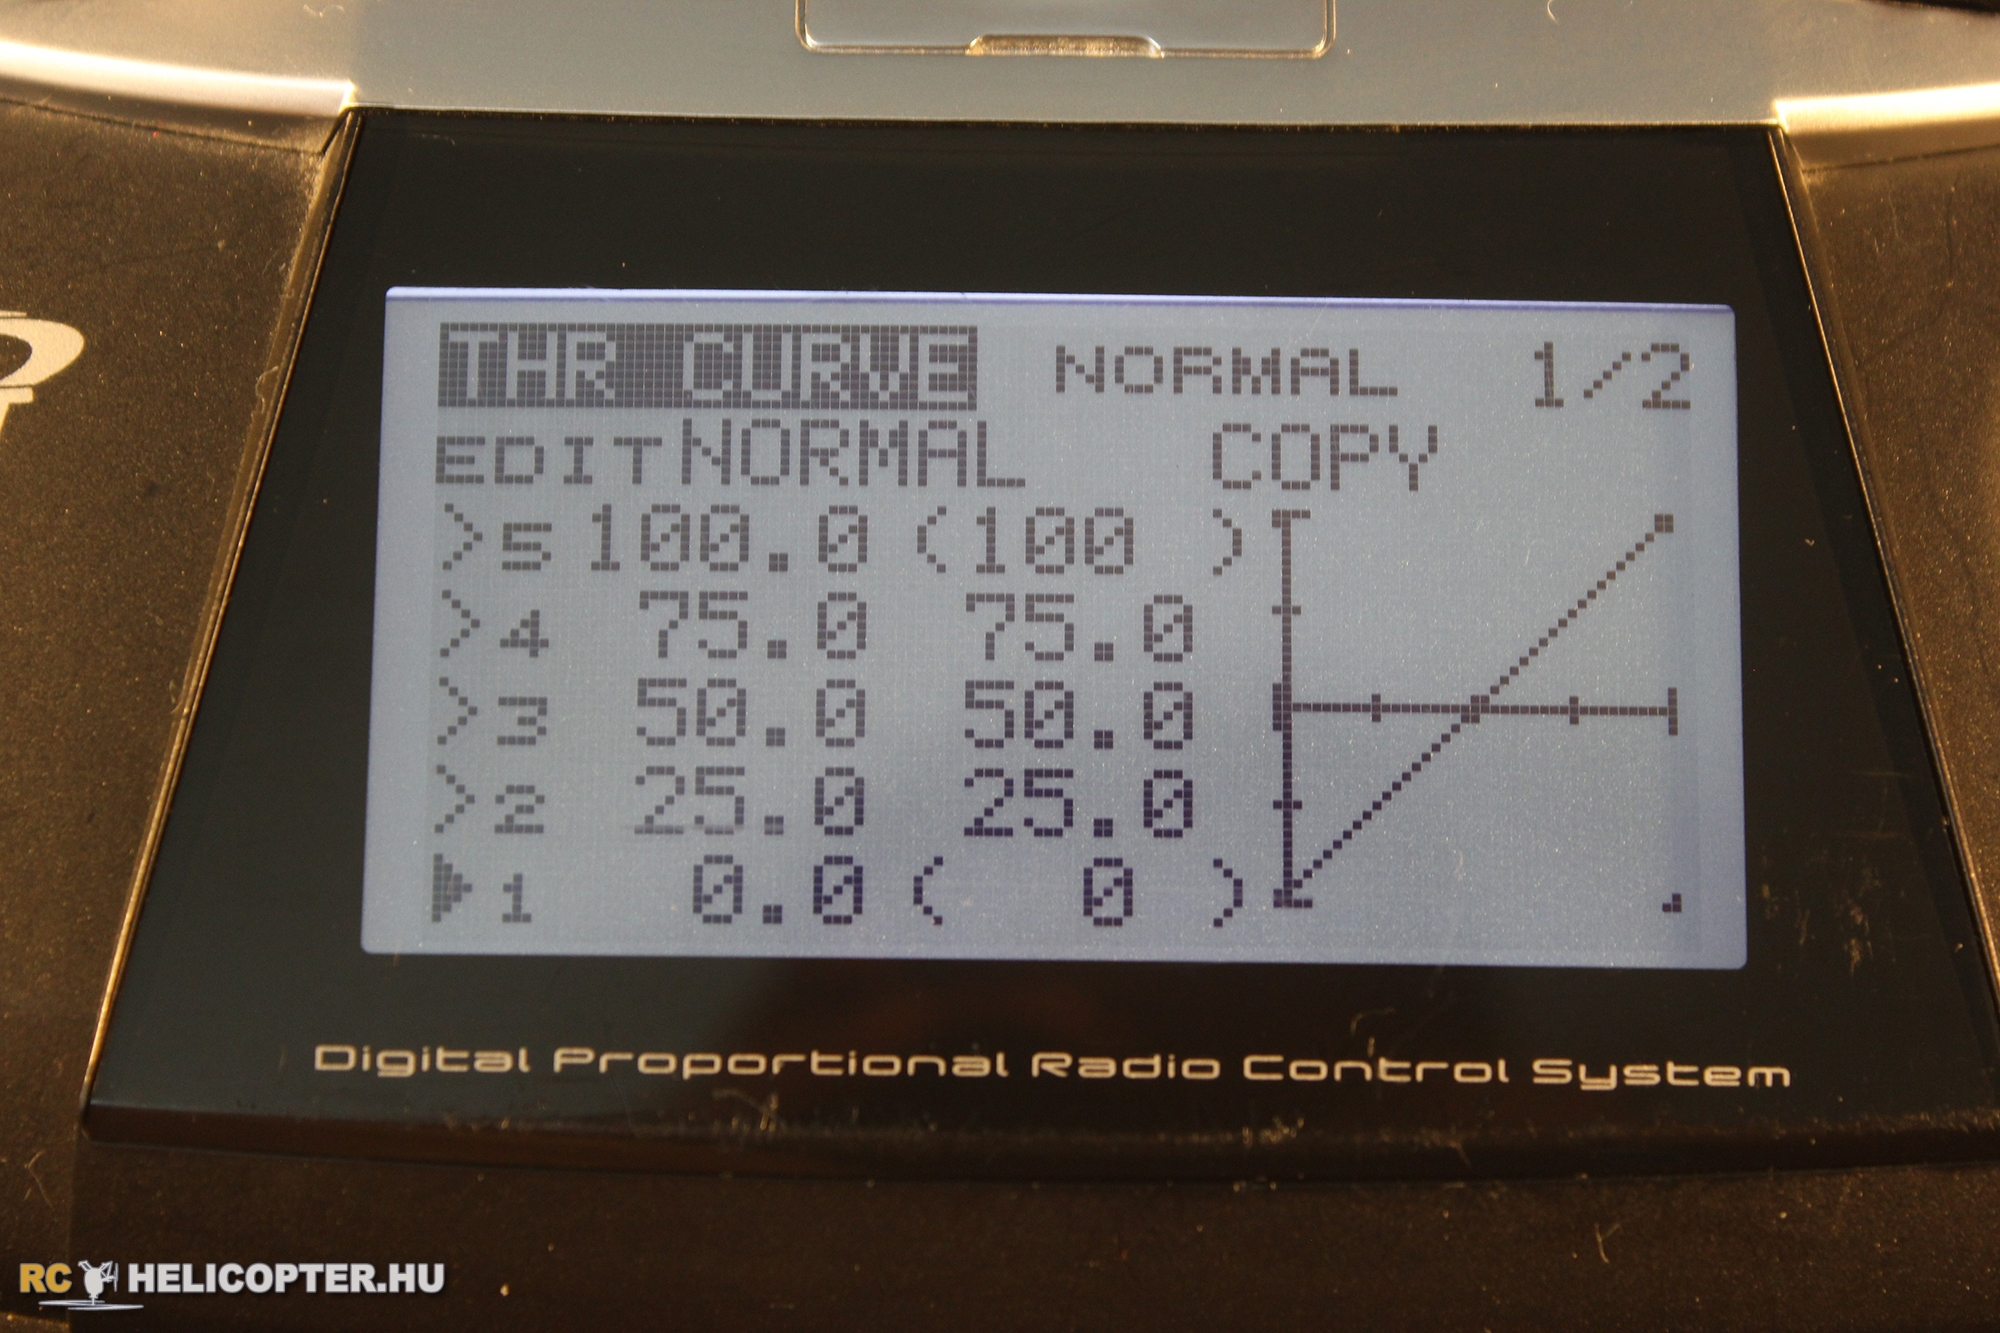 Normal throttle curve